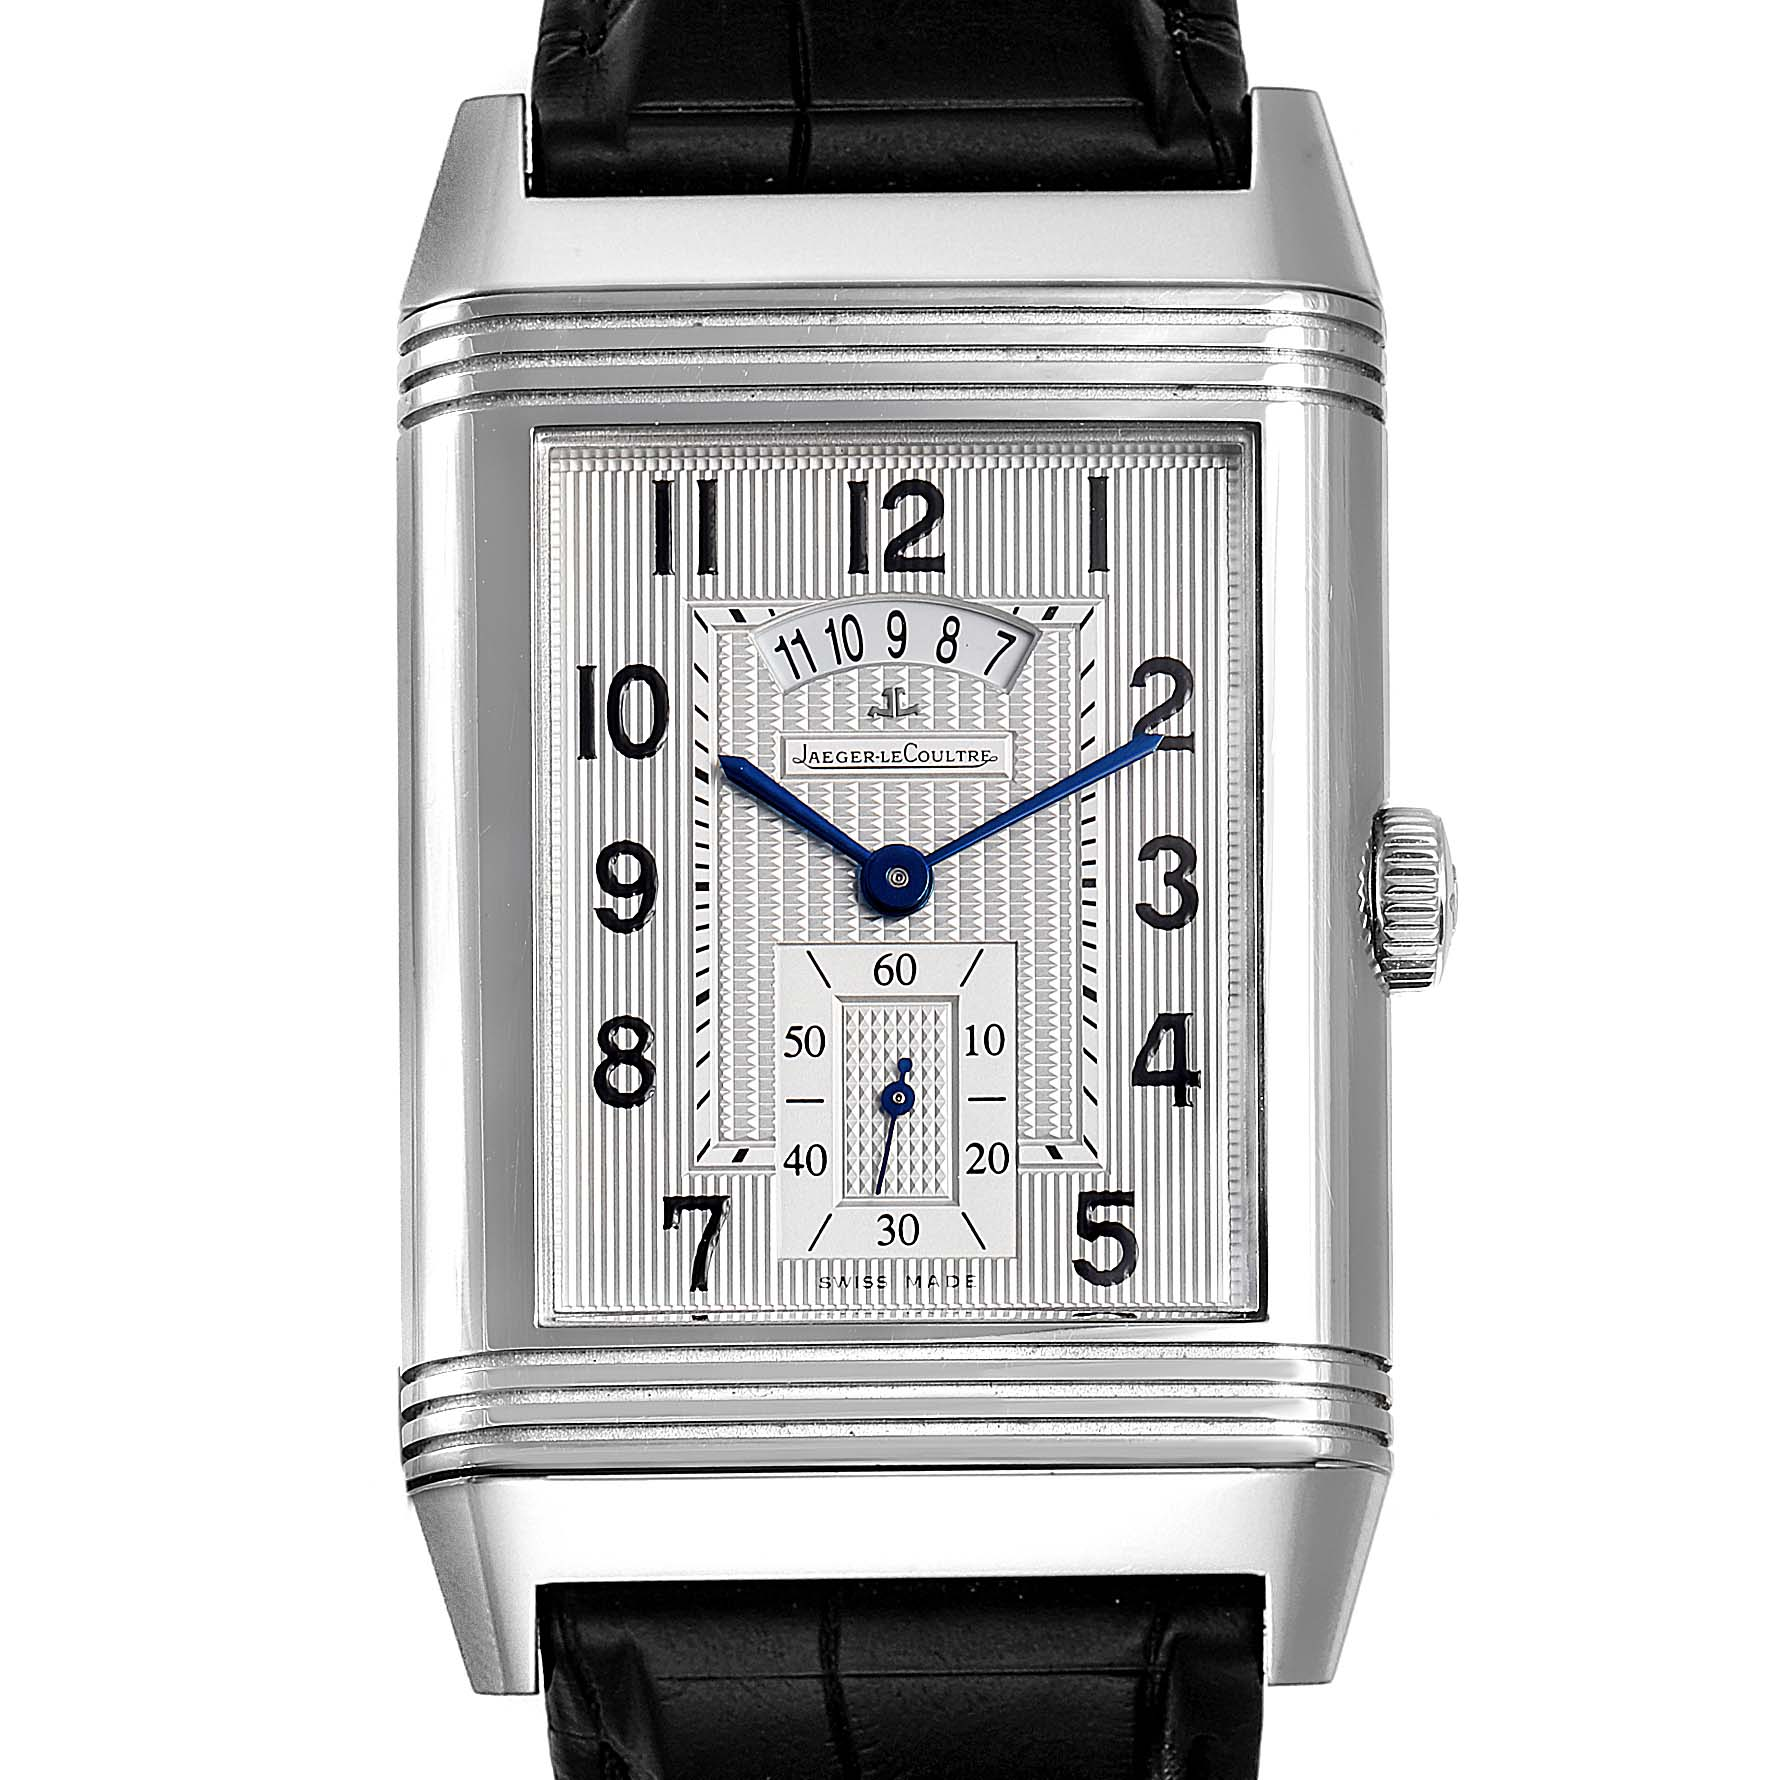 Jaeger LeCoultre Grande Reverso Duodate Limited Edition Watch 274.8.85 SwissWatchExpo